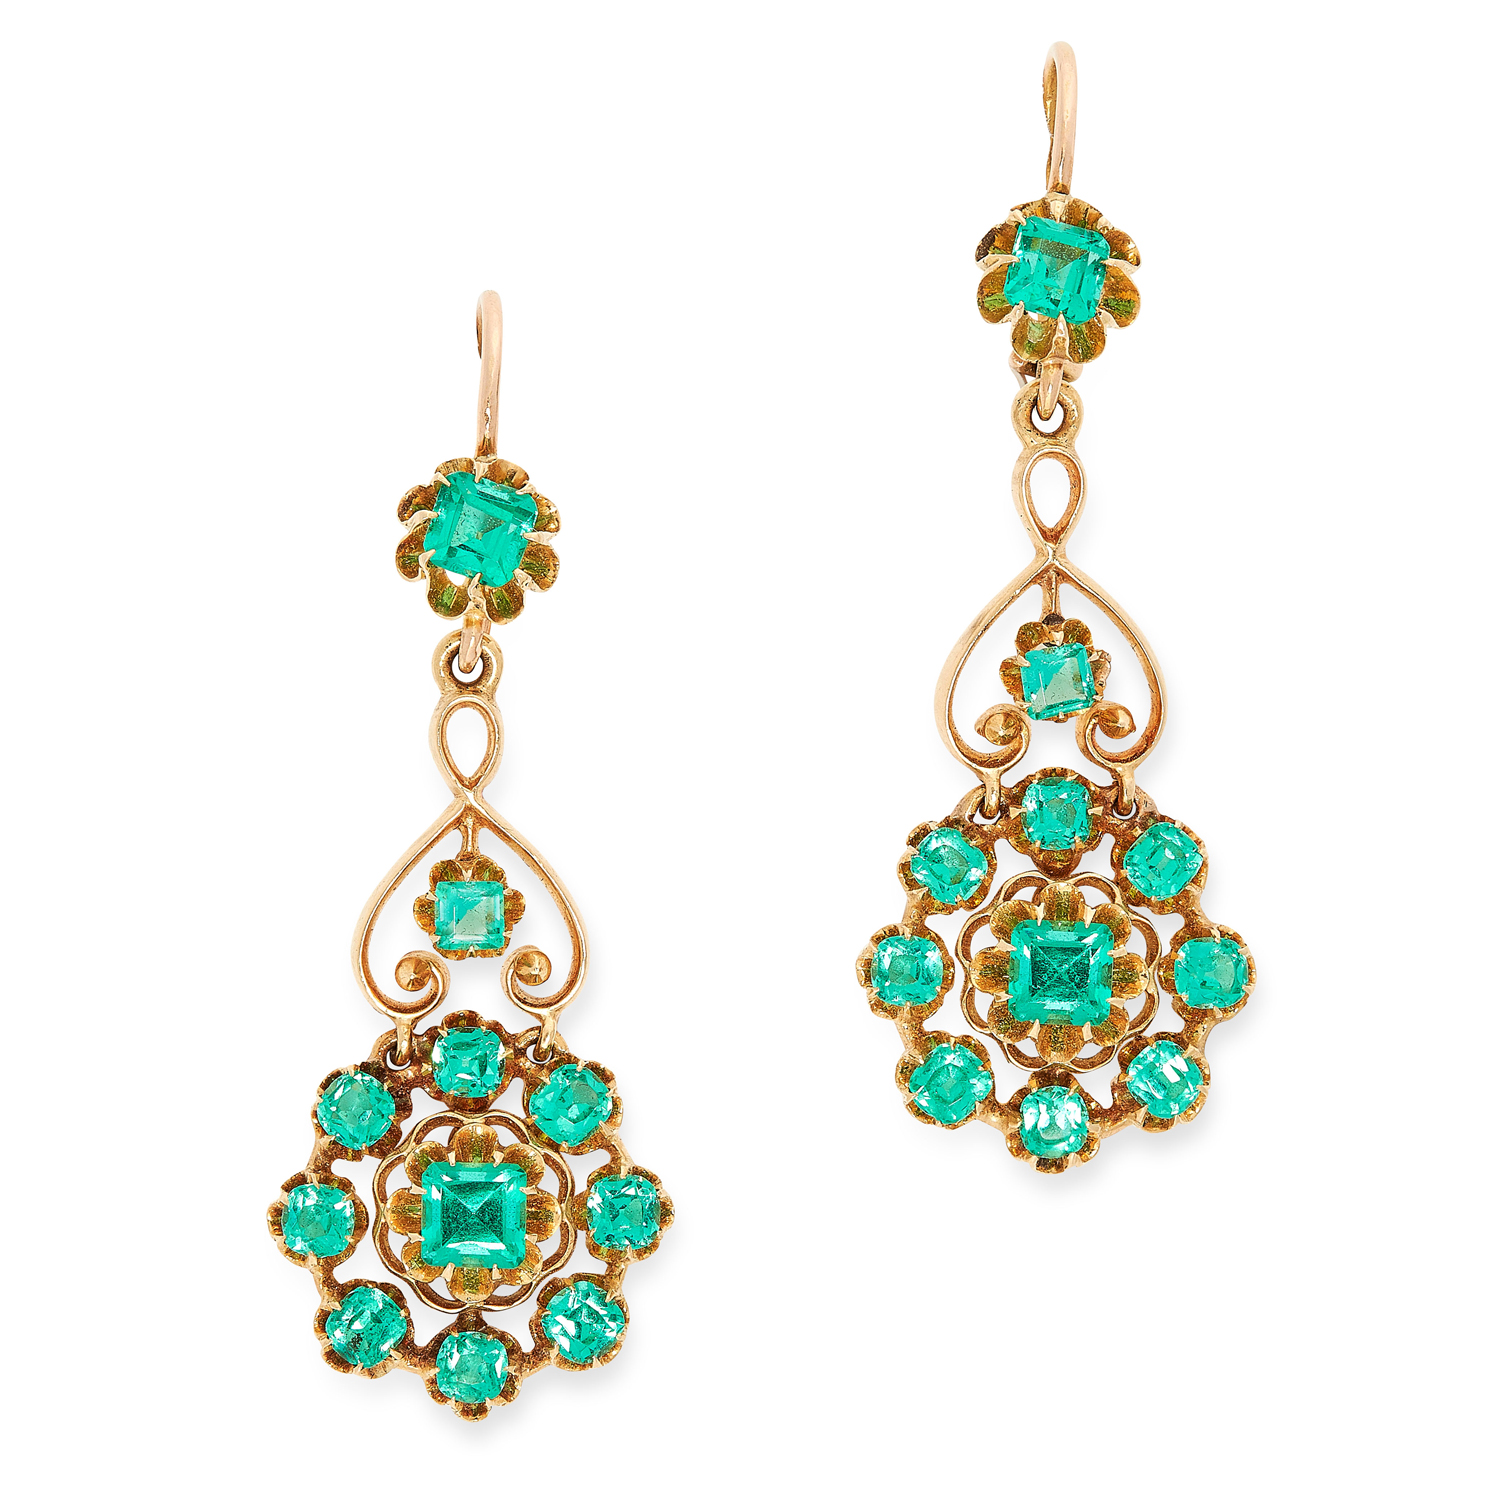 A PAIR OF ANTIQUE EMERALD EARRINGS in open scrolling design set with emerald and cushion cut emerald